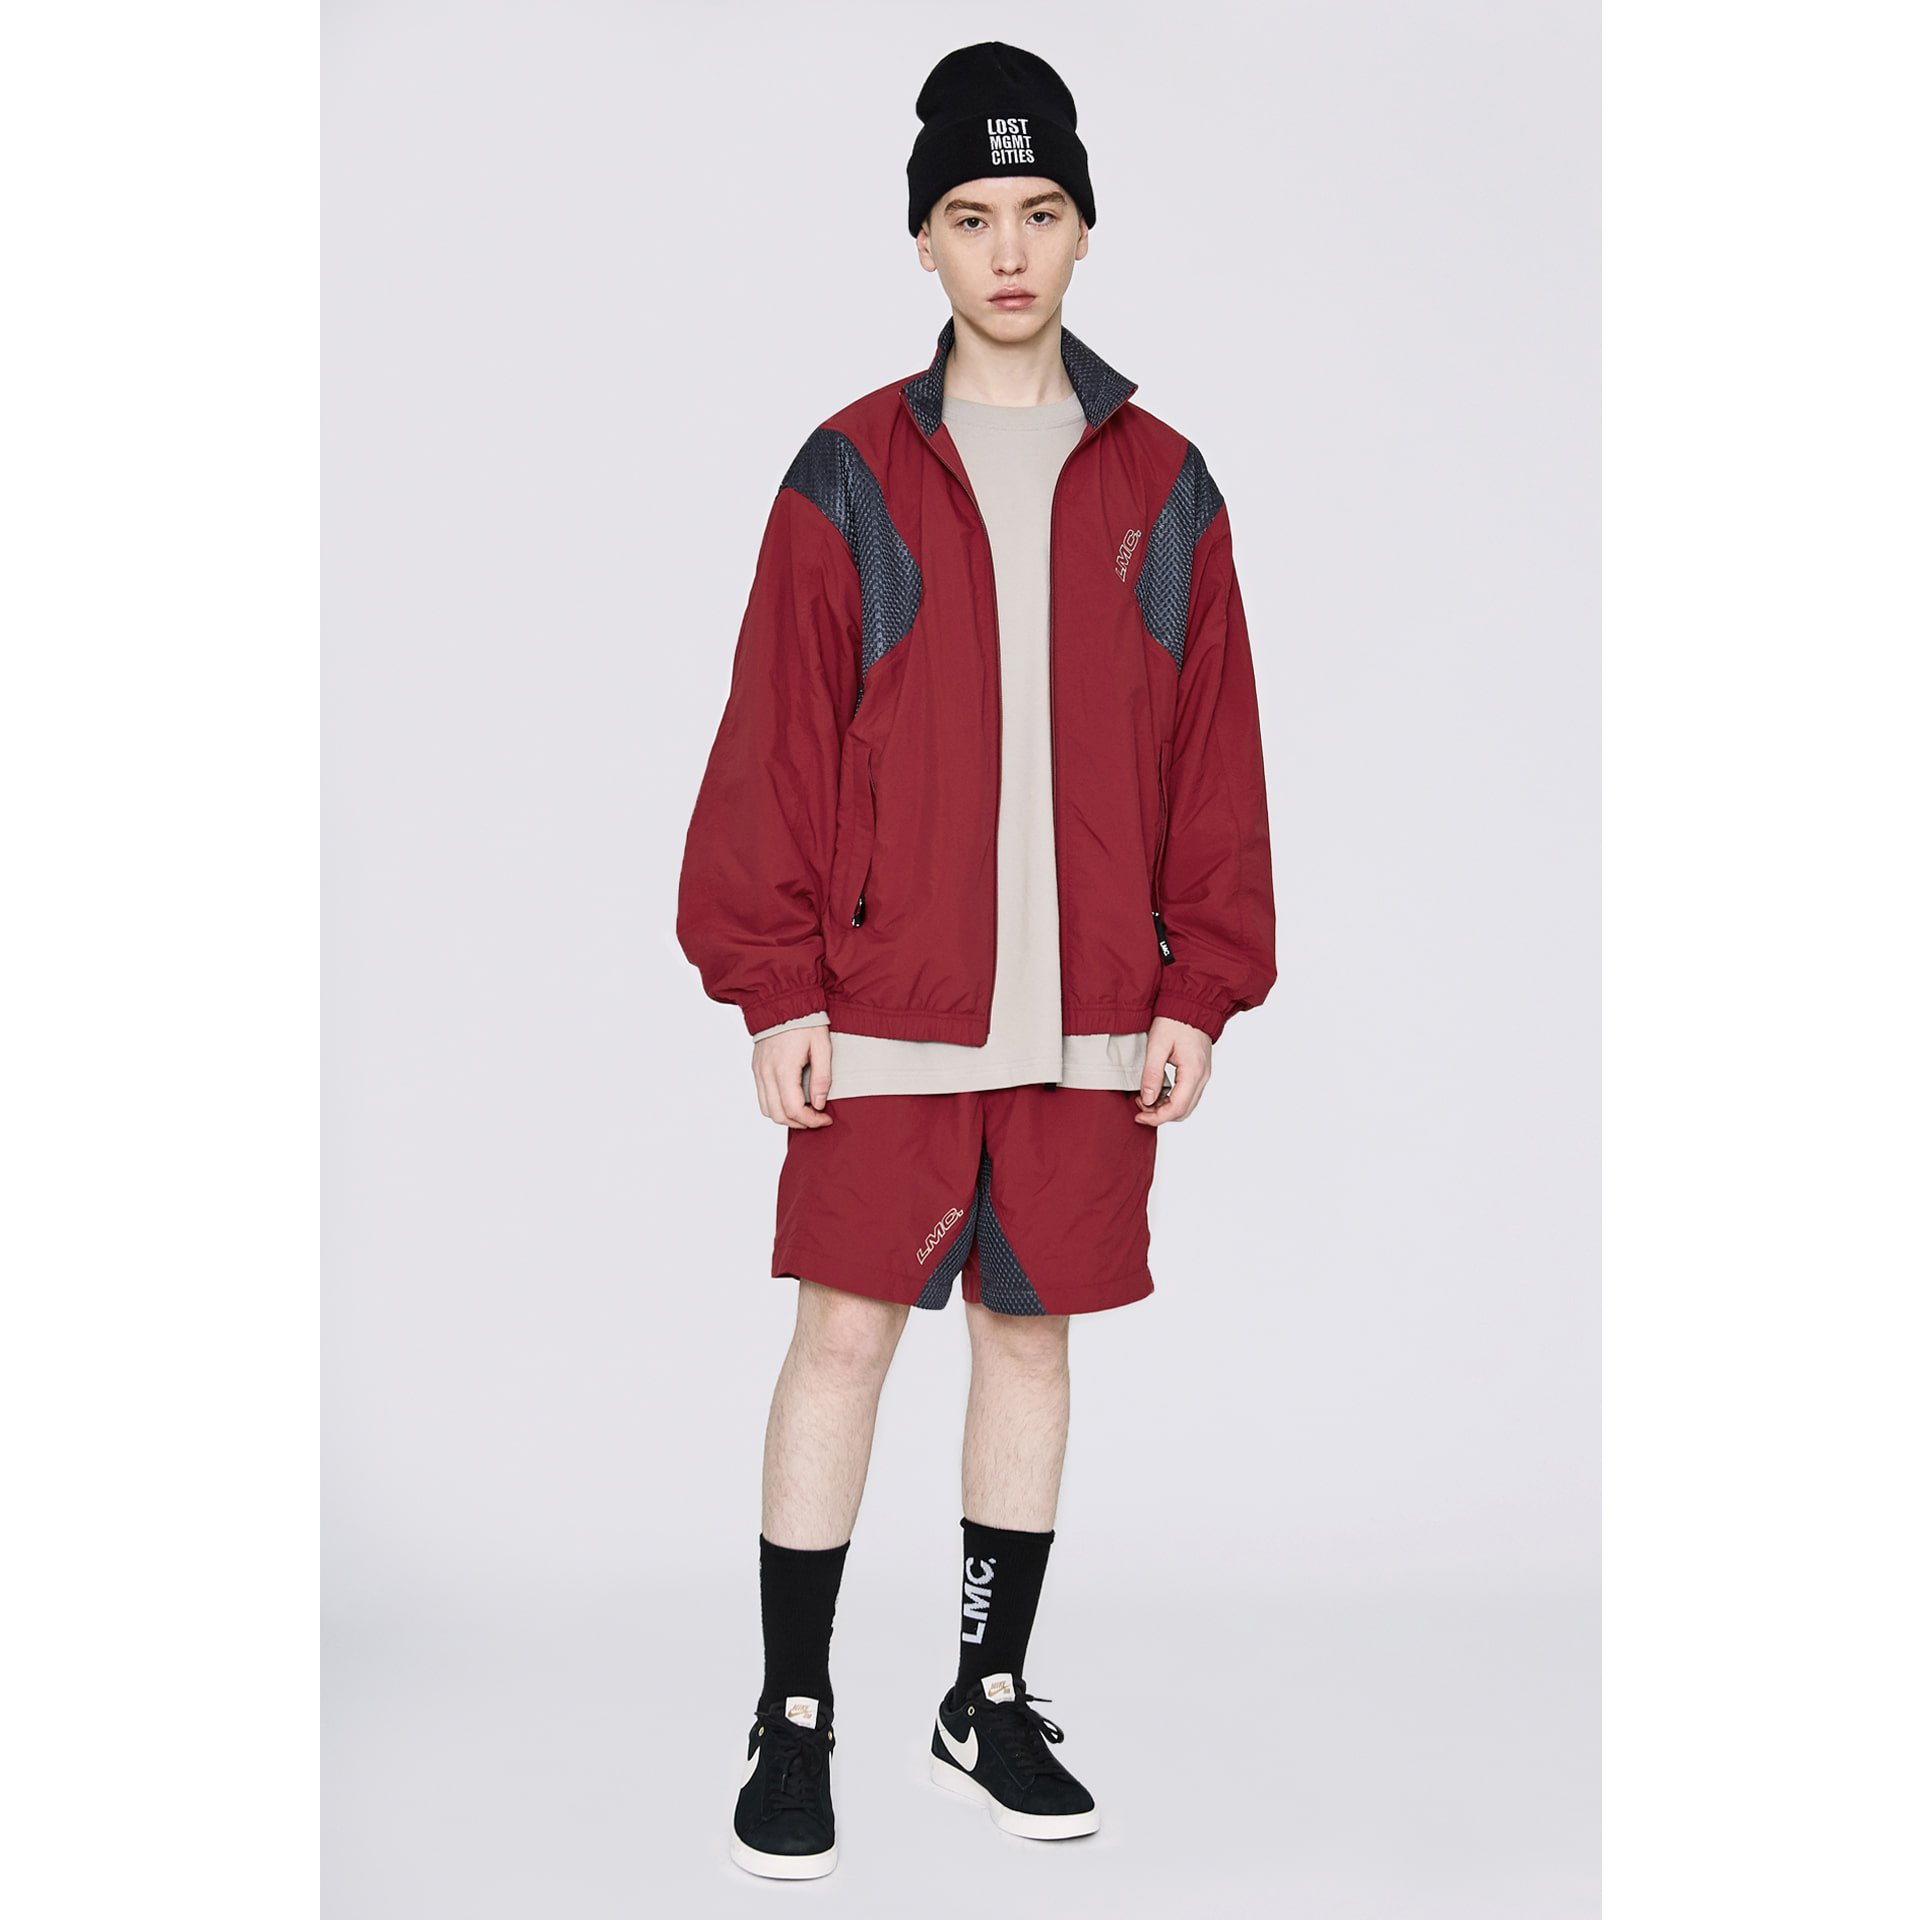 layer-LMC MMWB TRACK SUIT SHORTS red♡韓國男裝褲子